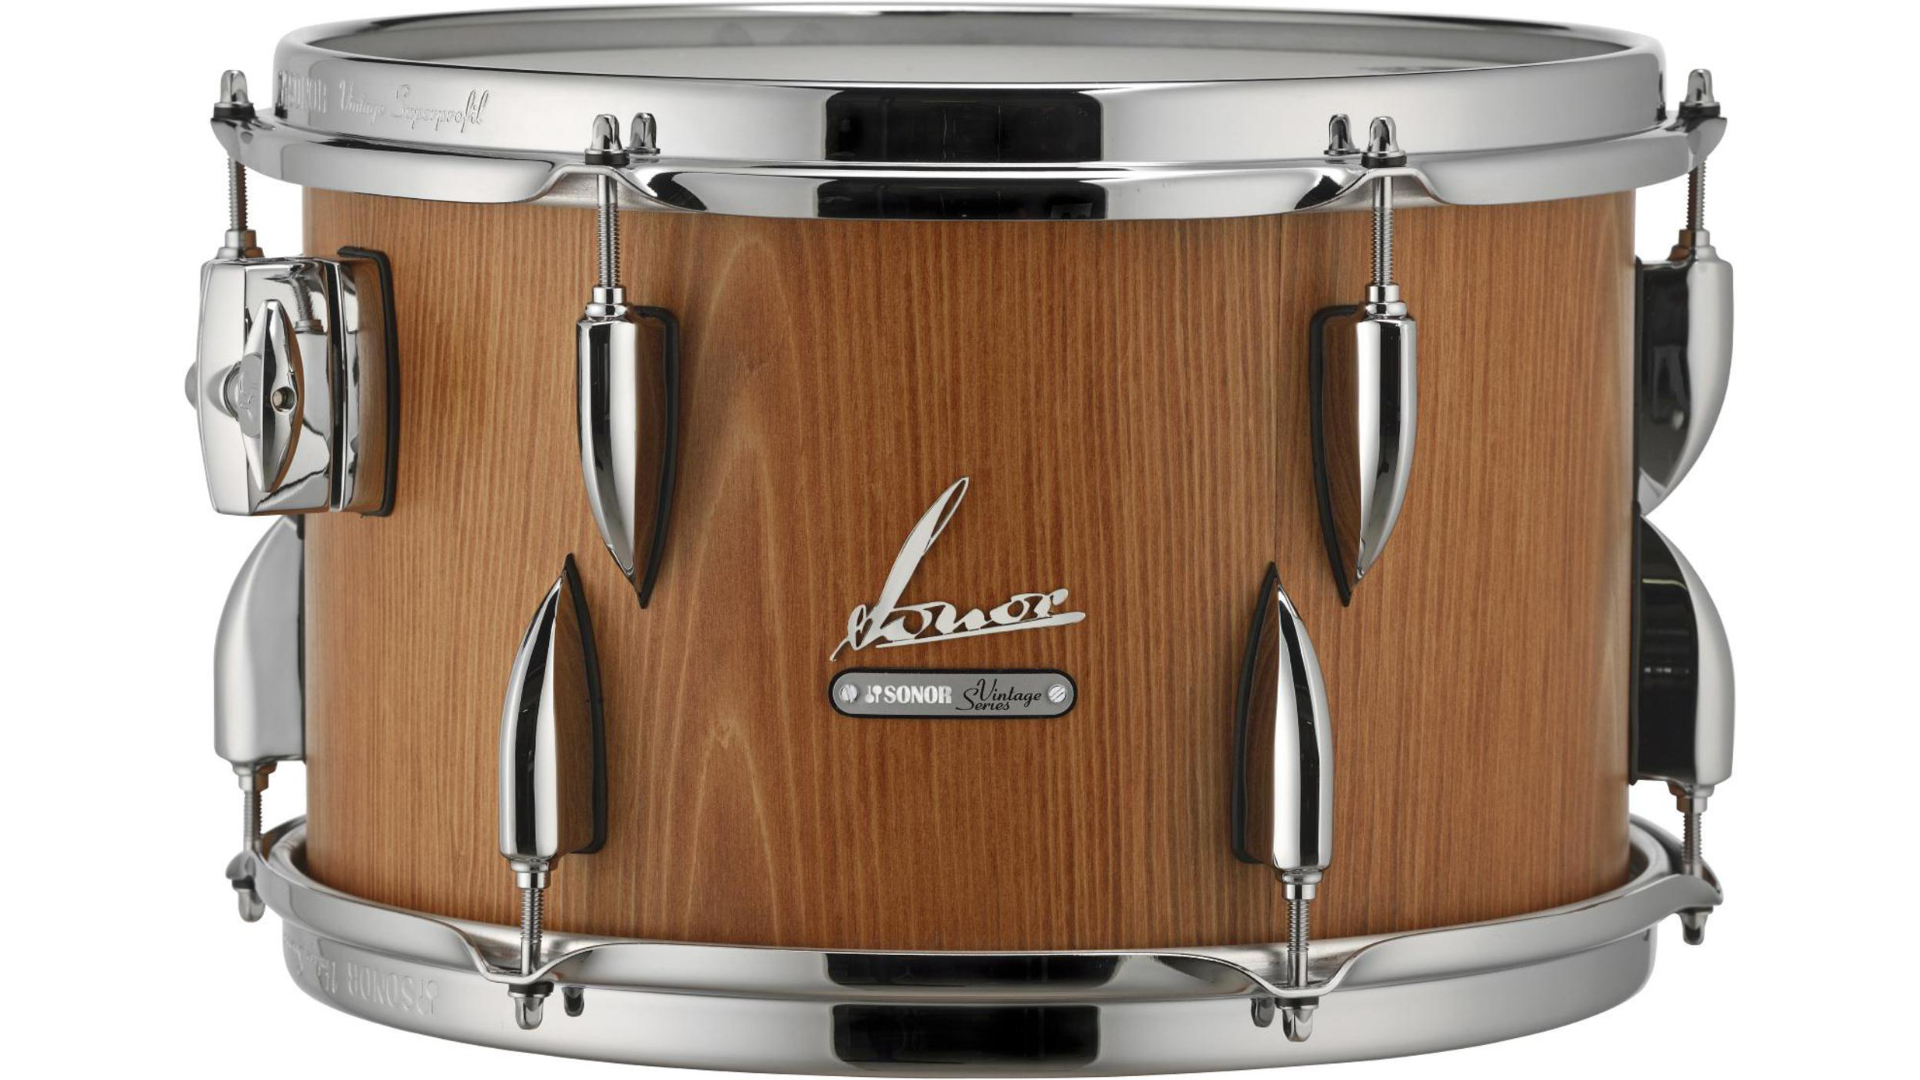 Sonor Vintage Series Tom  13 x 8 in. Vintage Natural